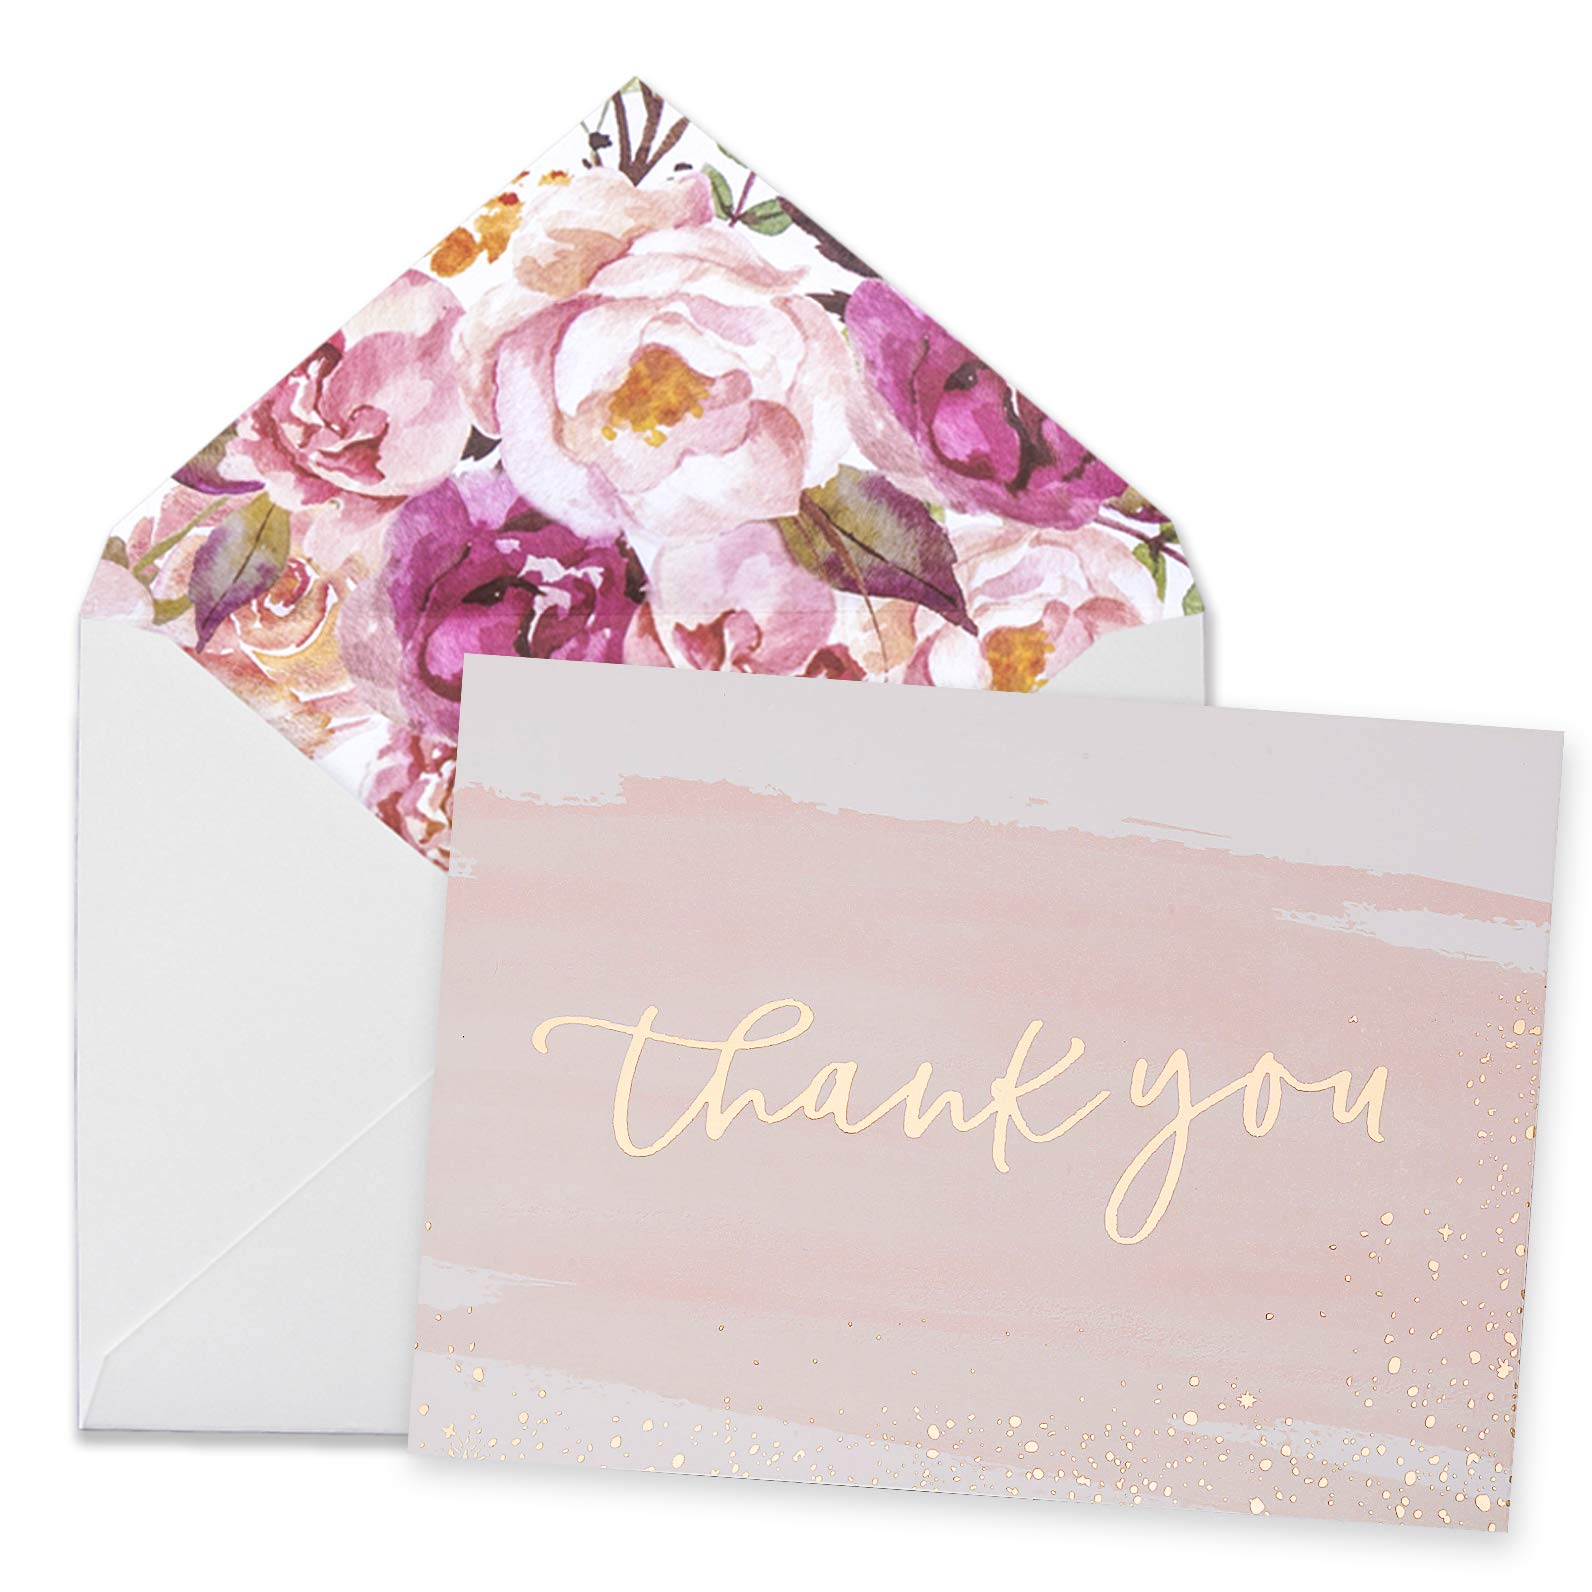 Thank You Cards-48 Bulk Blank Gold Foil&Watercolor Bulk Box Set with Elegant Floral Envelopes &Stickers for Wedding, Baby Shower, Bridal Shower, Business, Anniversary, Funeral -4'' x 6'' by Scheful